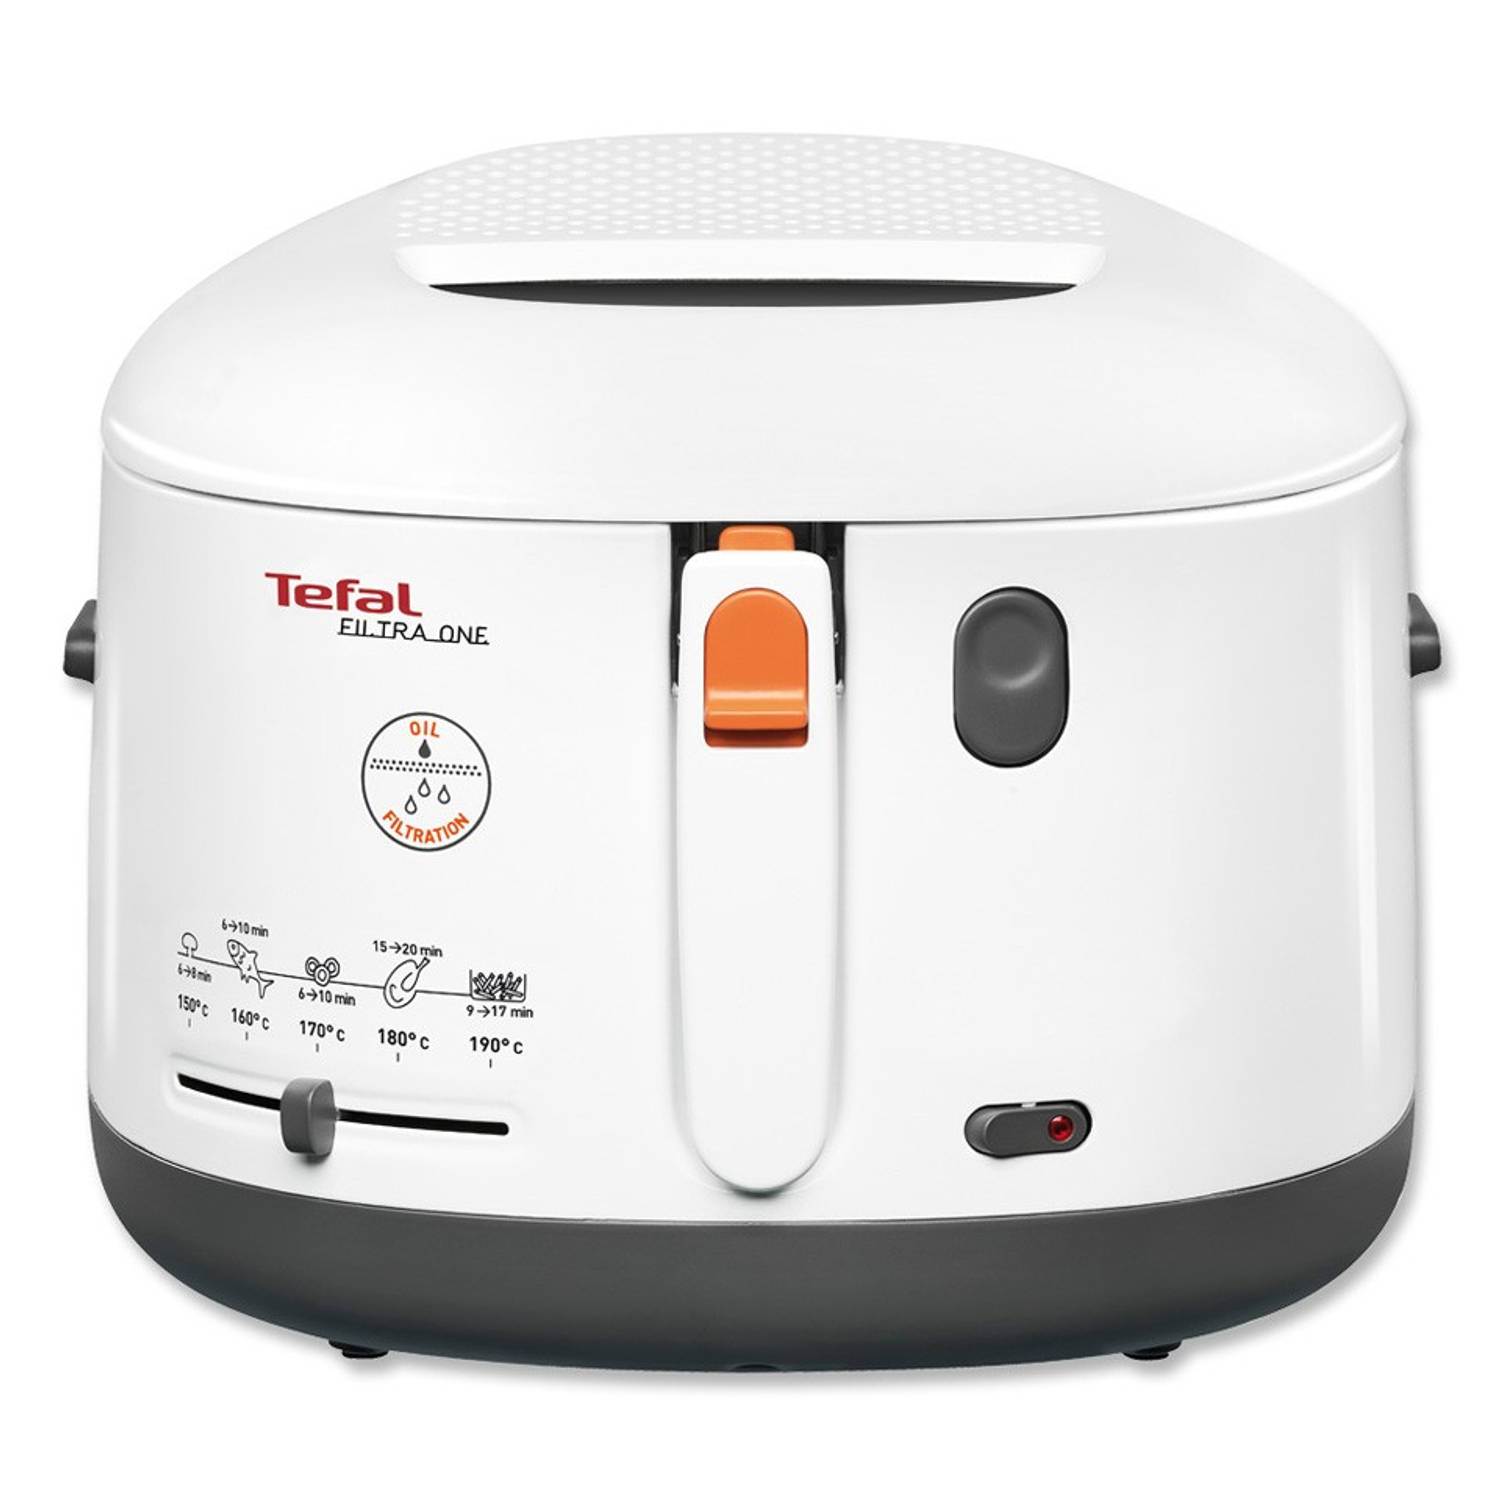 Tefal friteuse Filtra One FF1621 - wit